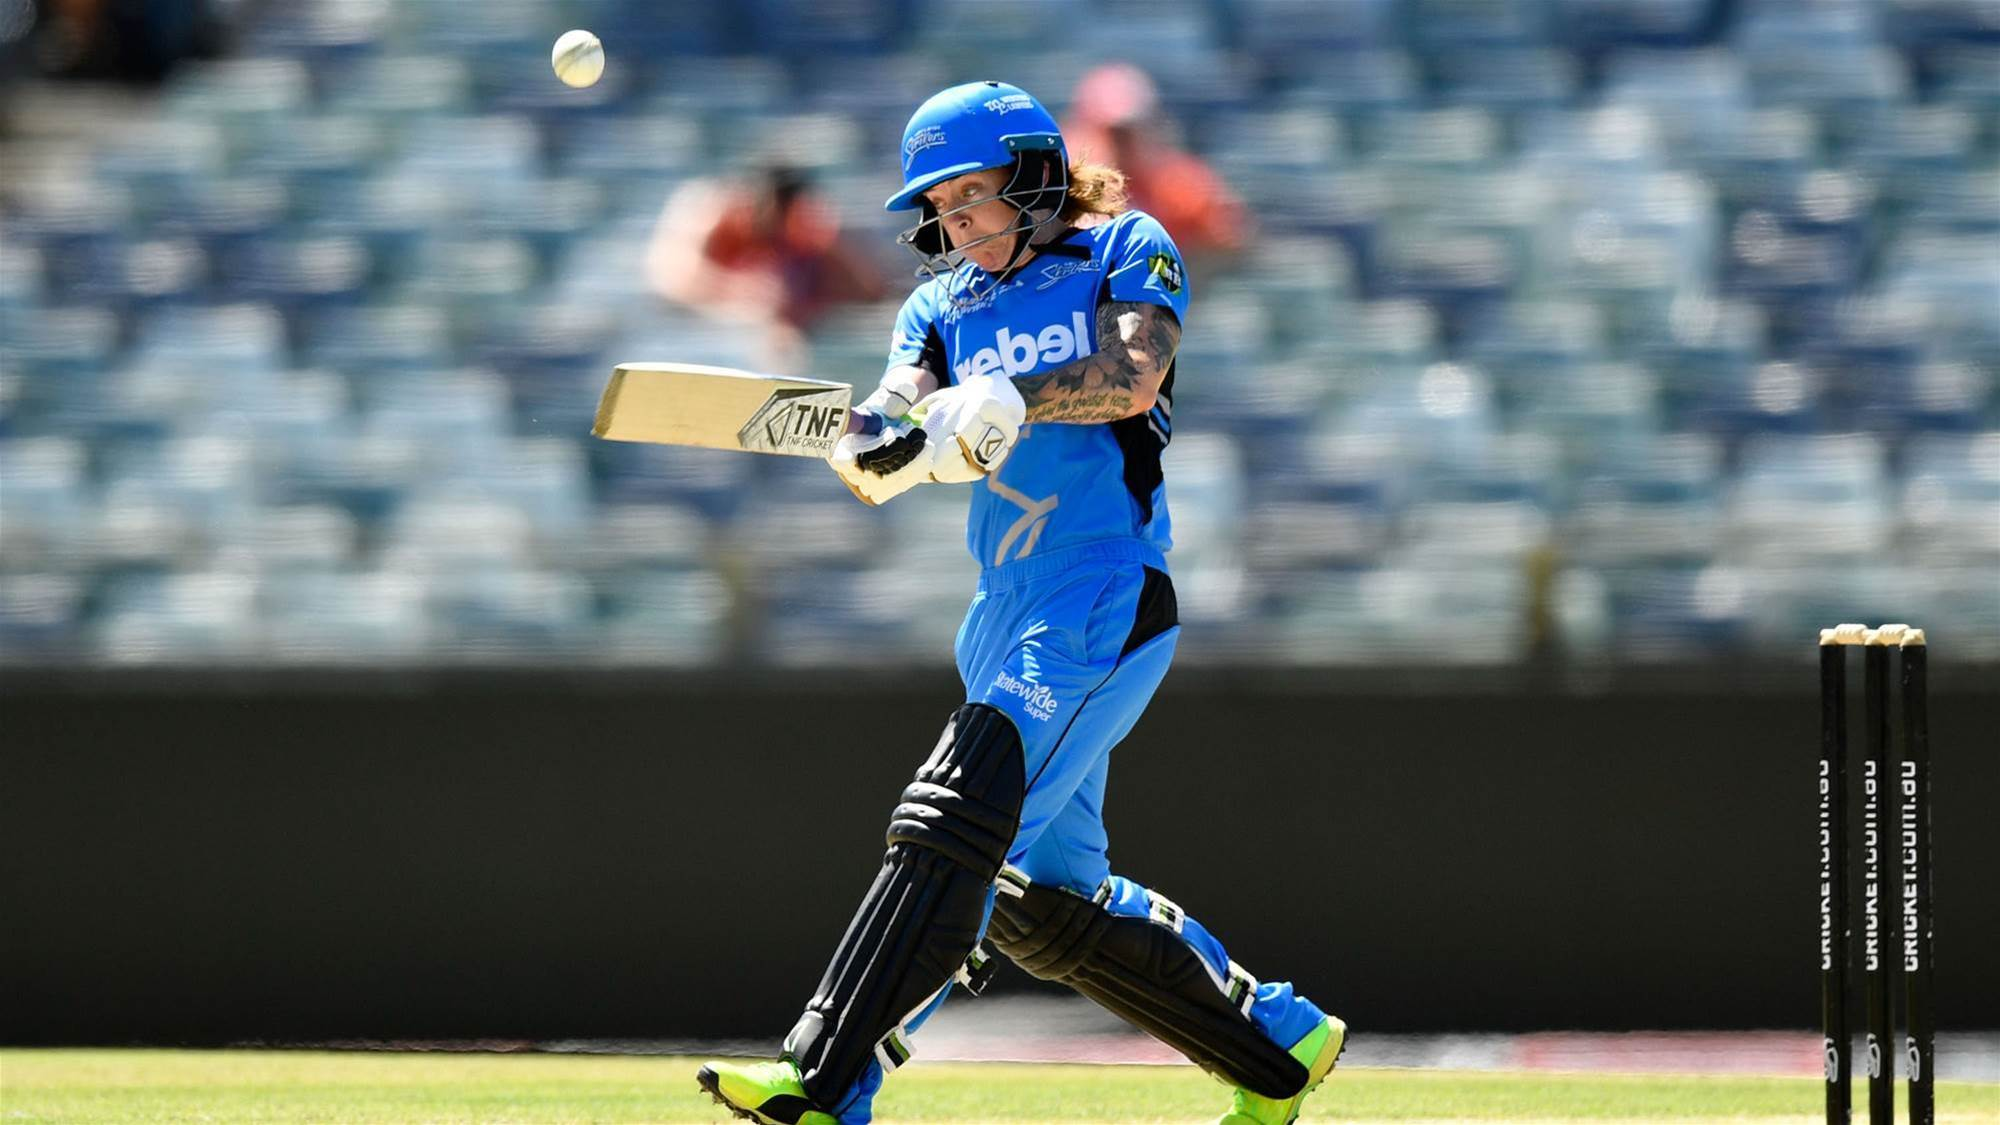 Coyte signs with Adelaide Strikers